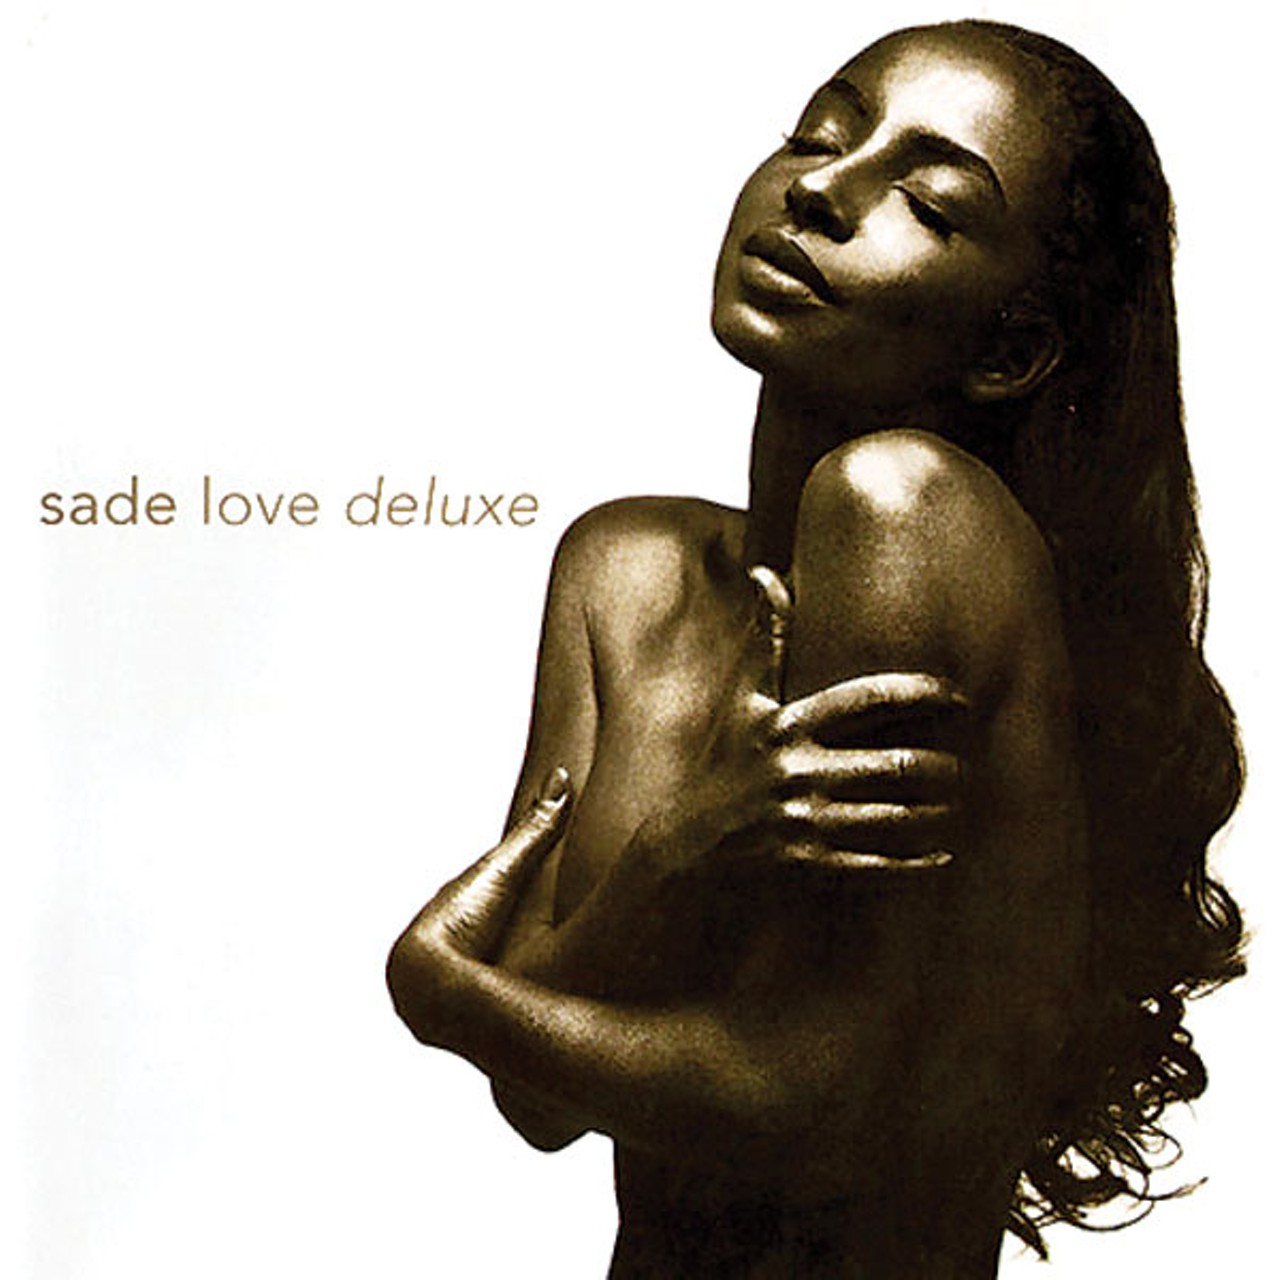 sade love deluxe